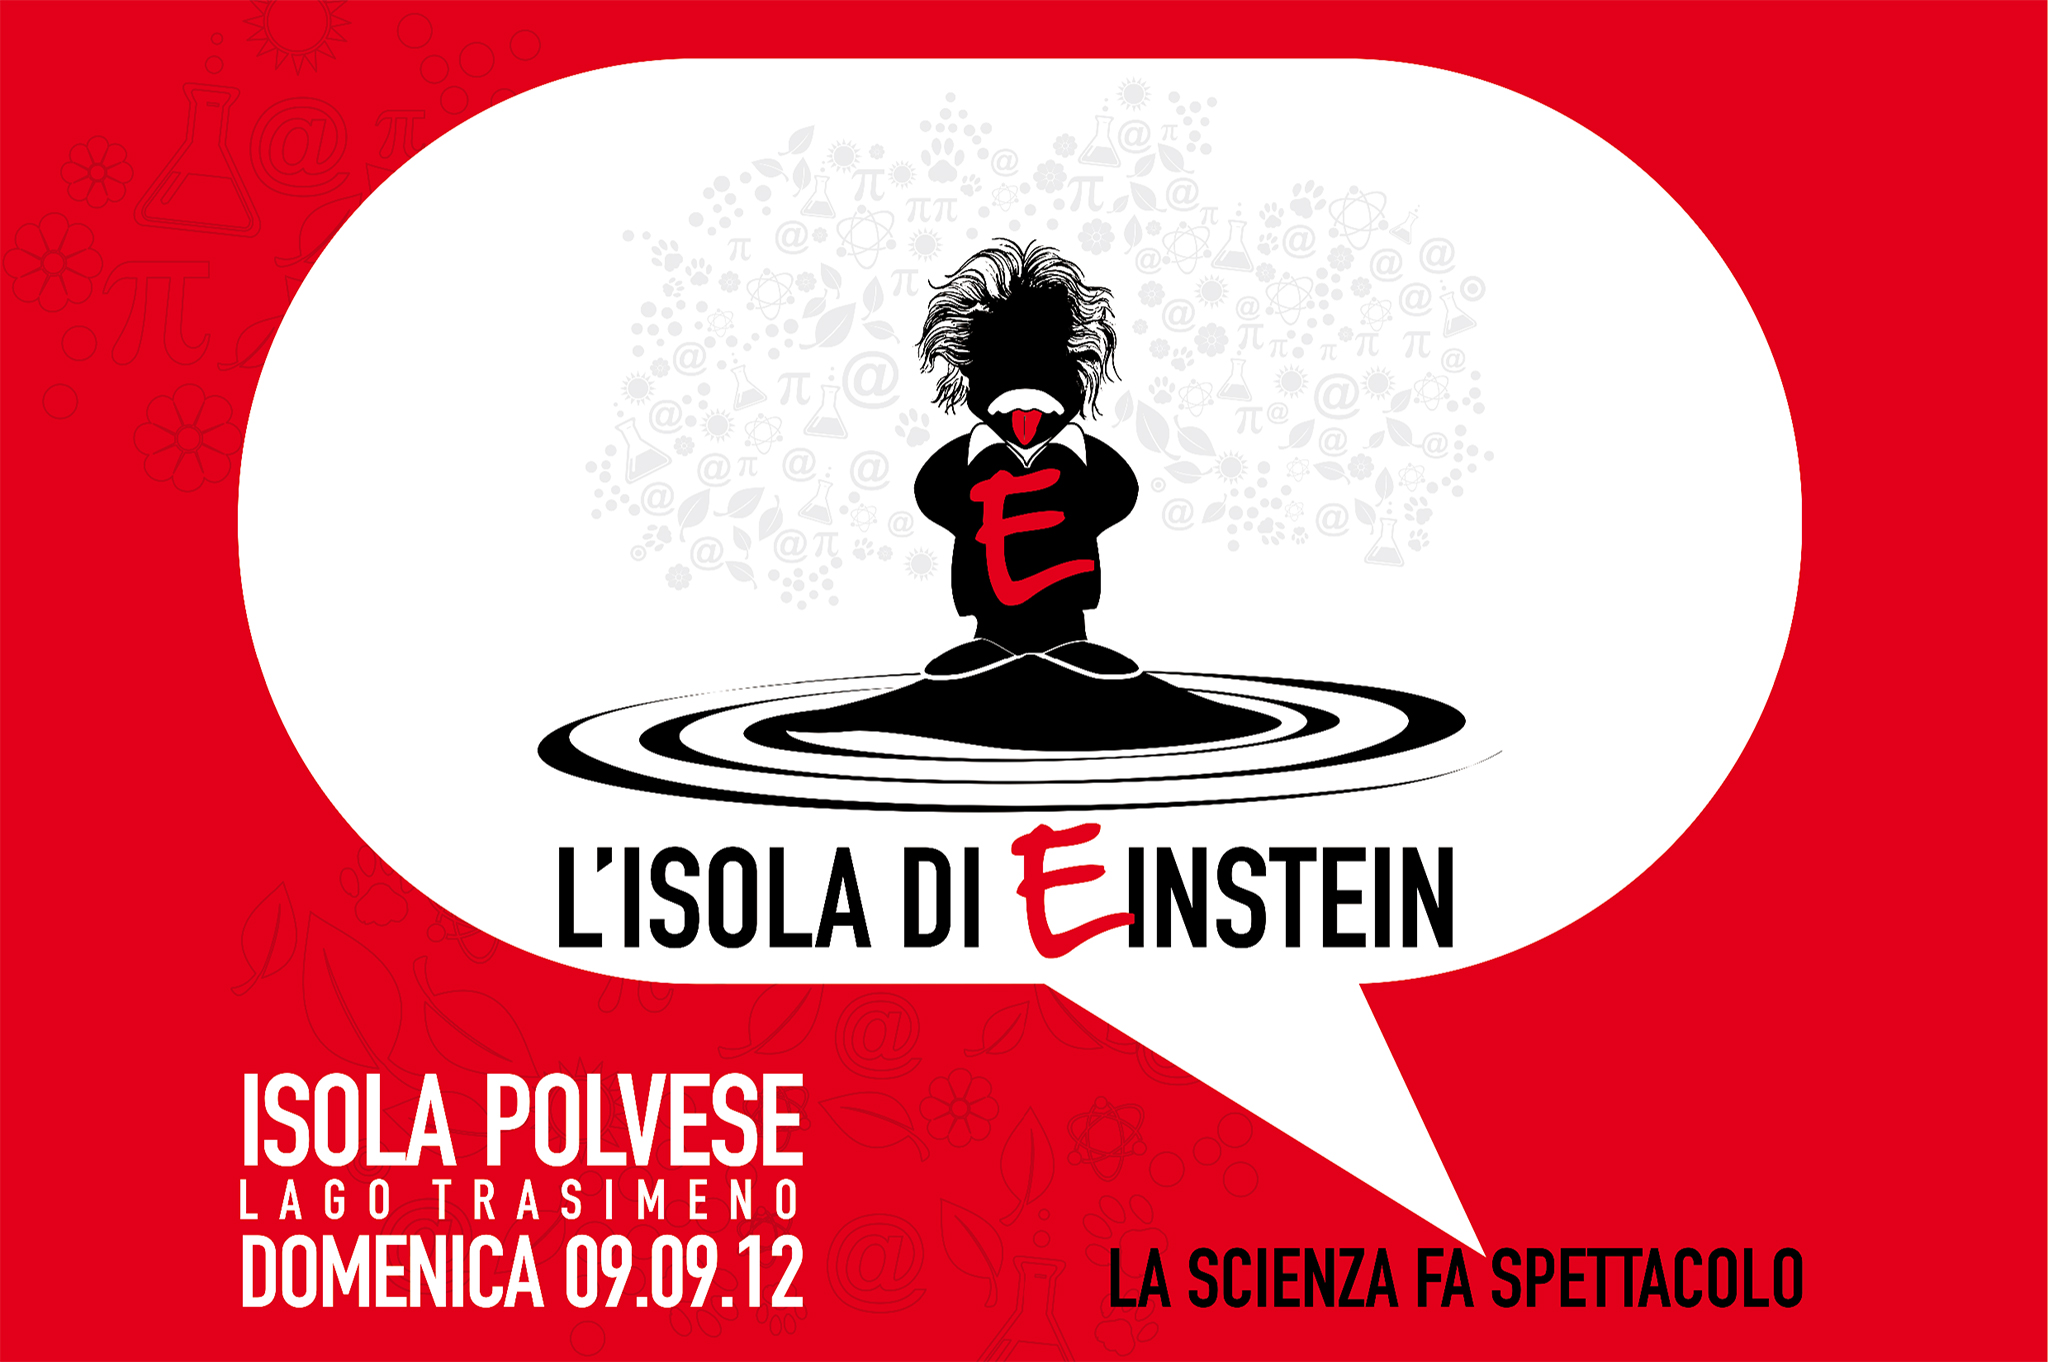 http://www.isoladieinstein.it/wp-content/uploads/2015/12/edizione2012-1.jpg